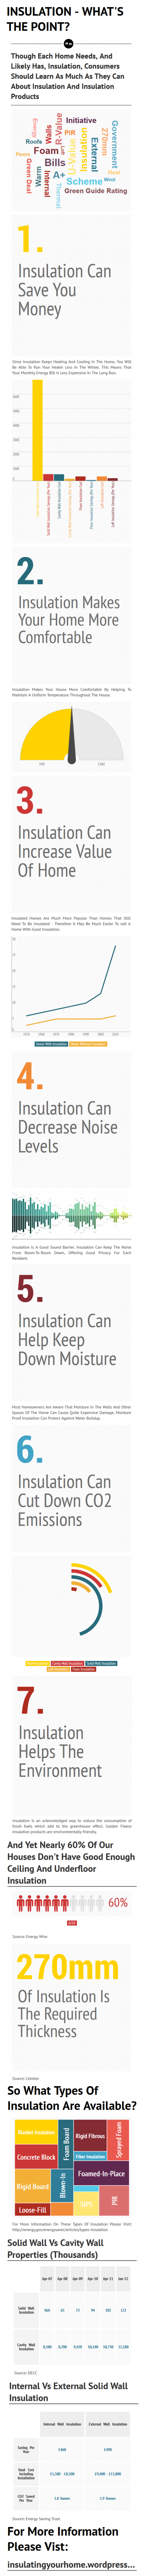 Insulation - What